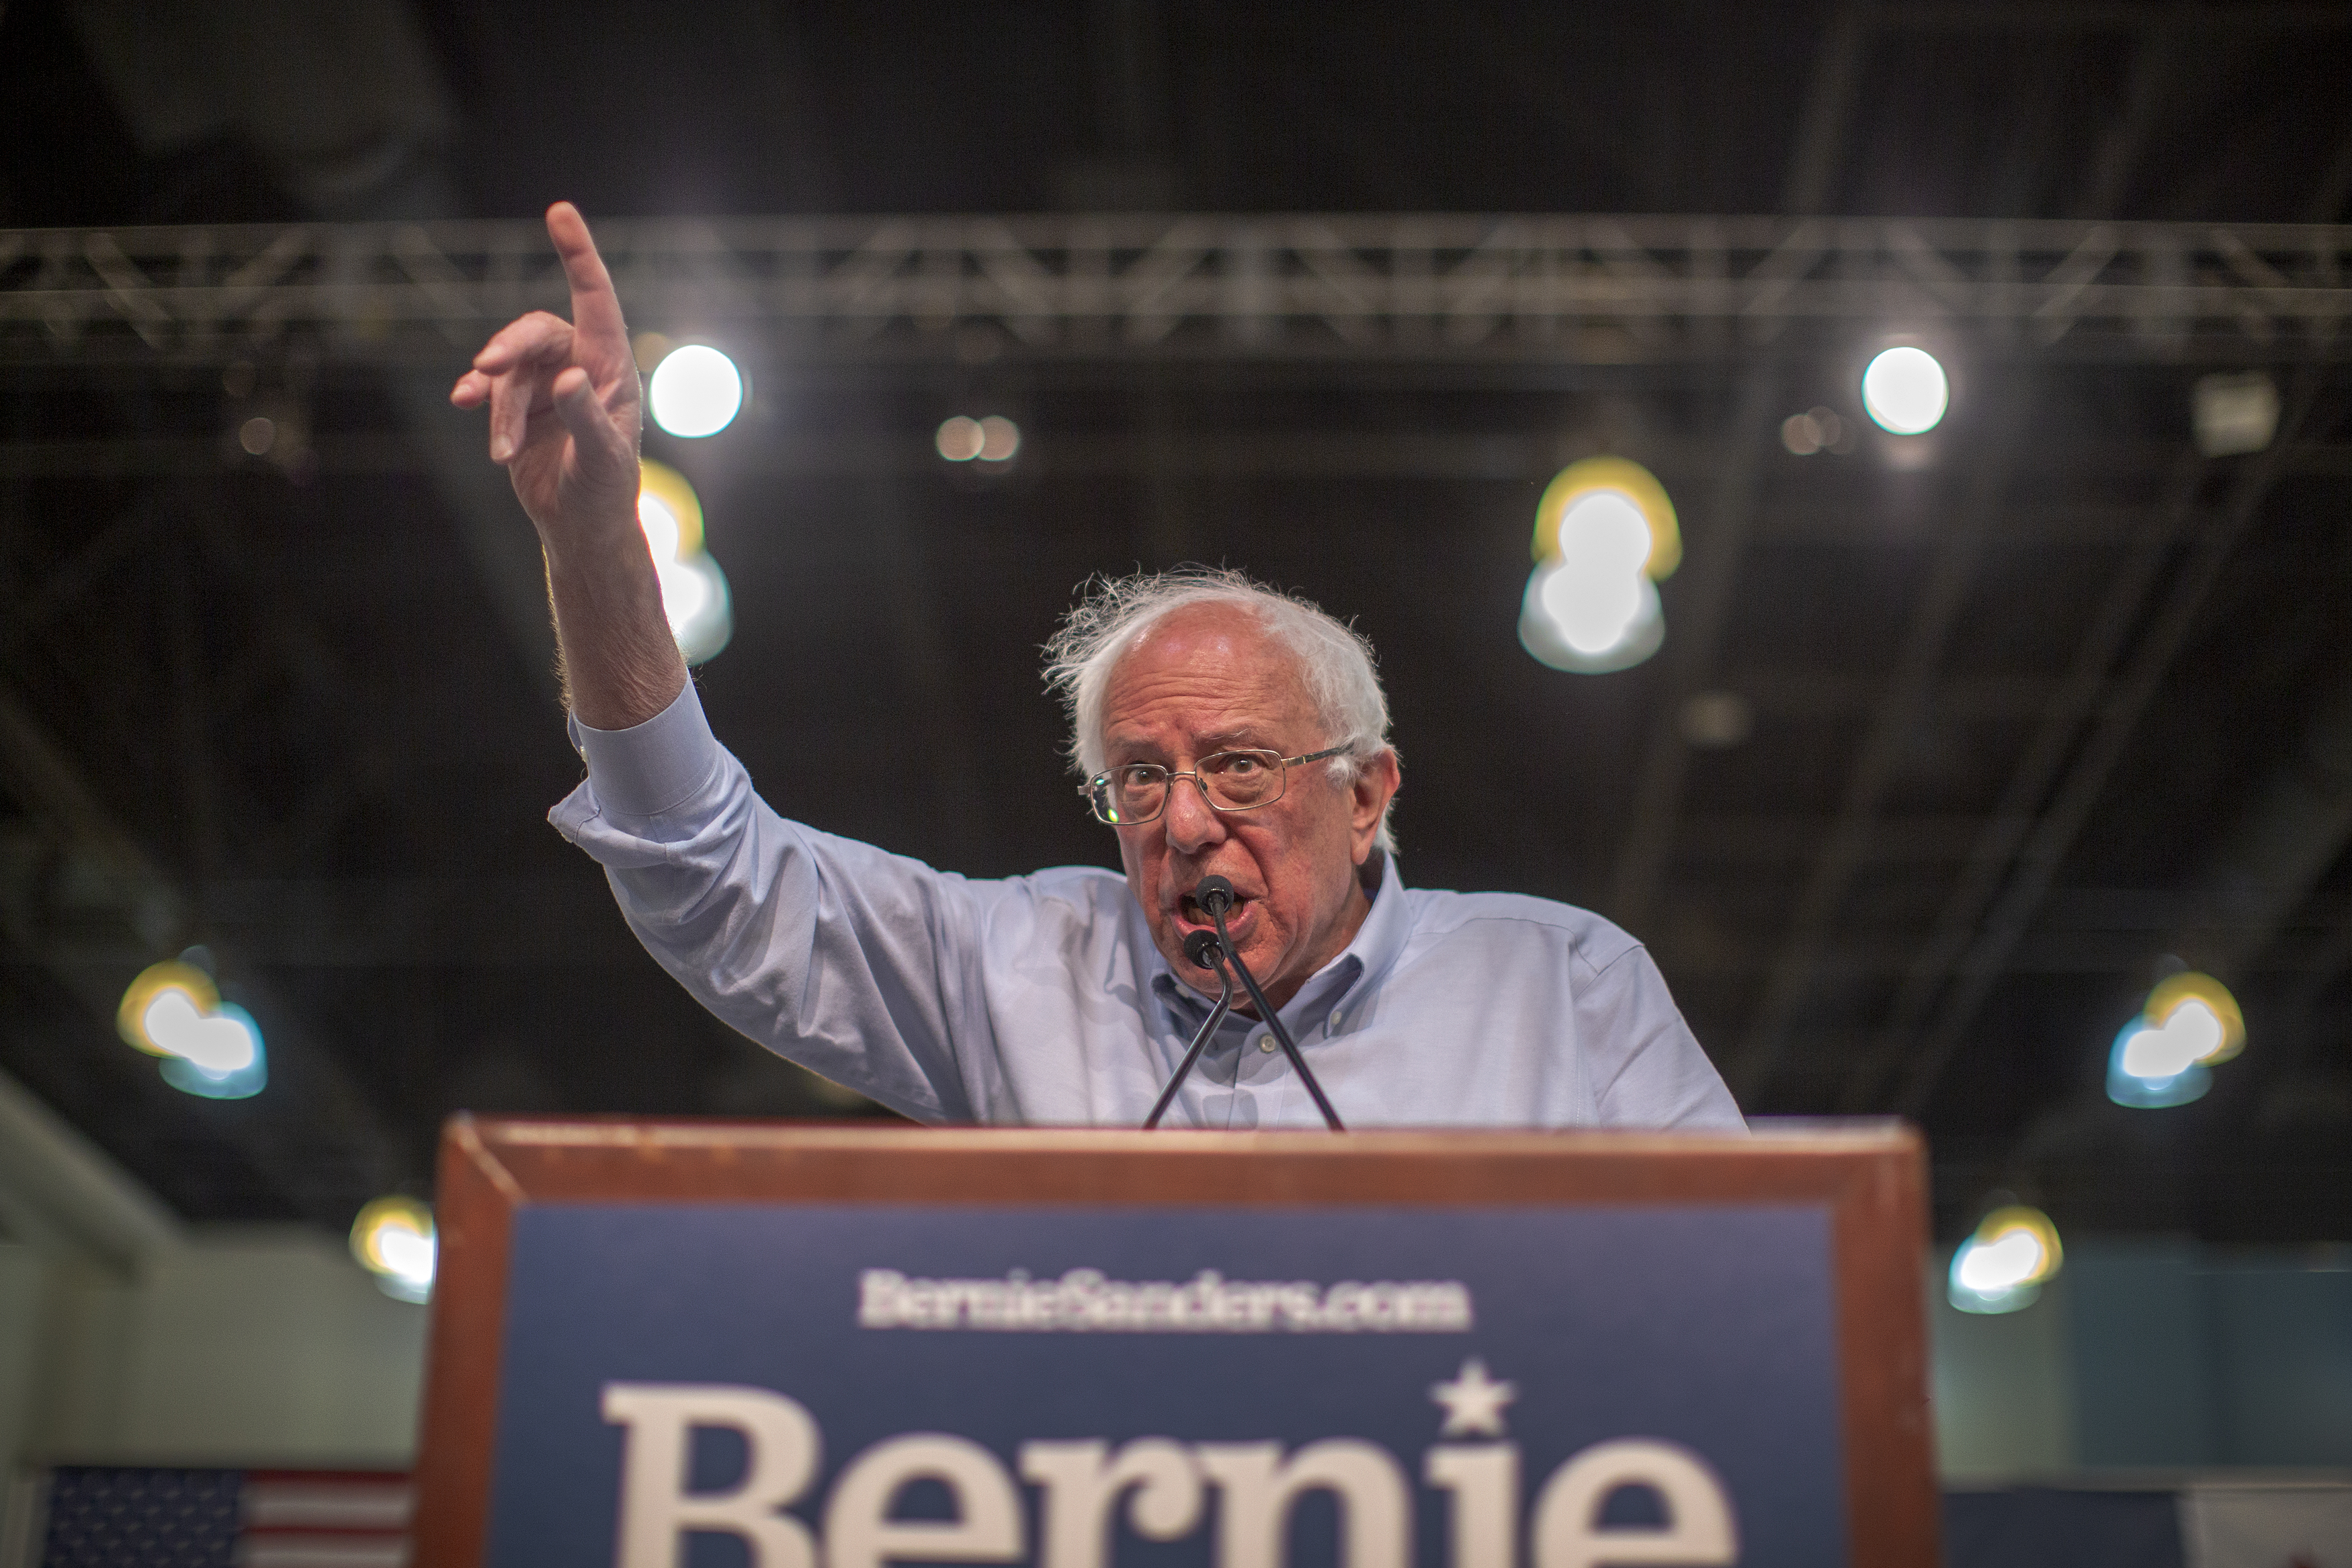 Bernie Sanders applauds the gaming industry's push for unionization